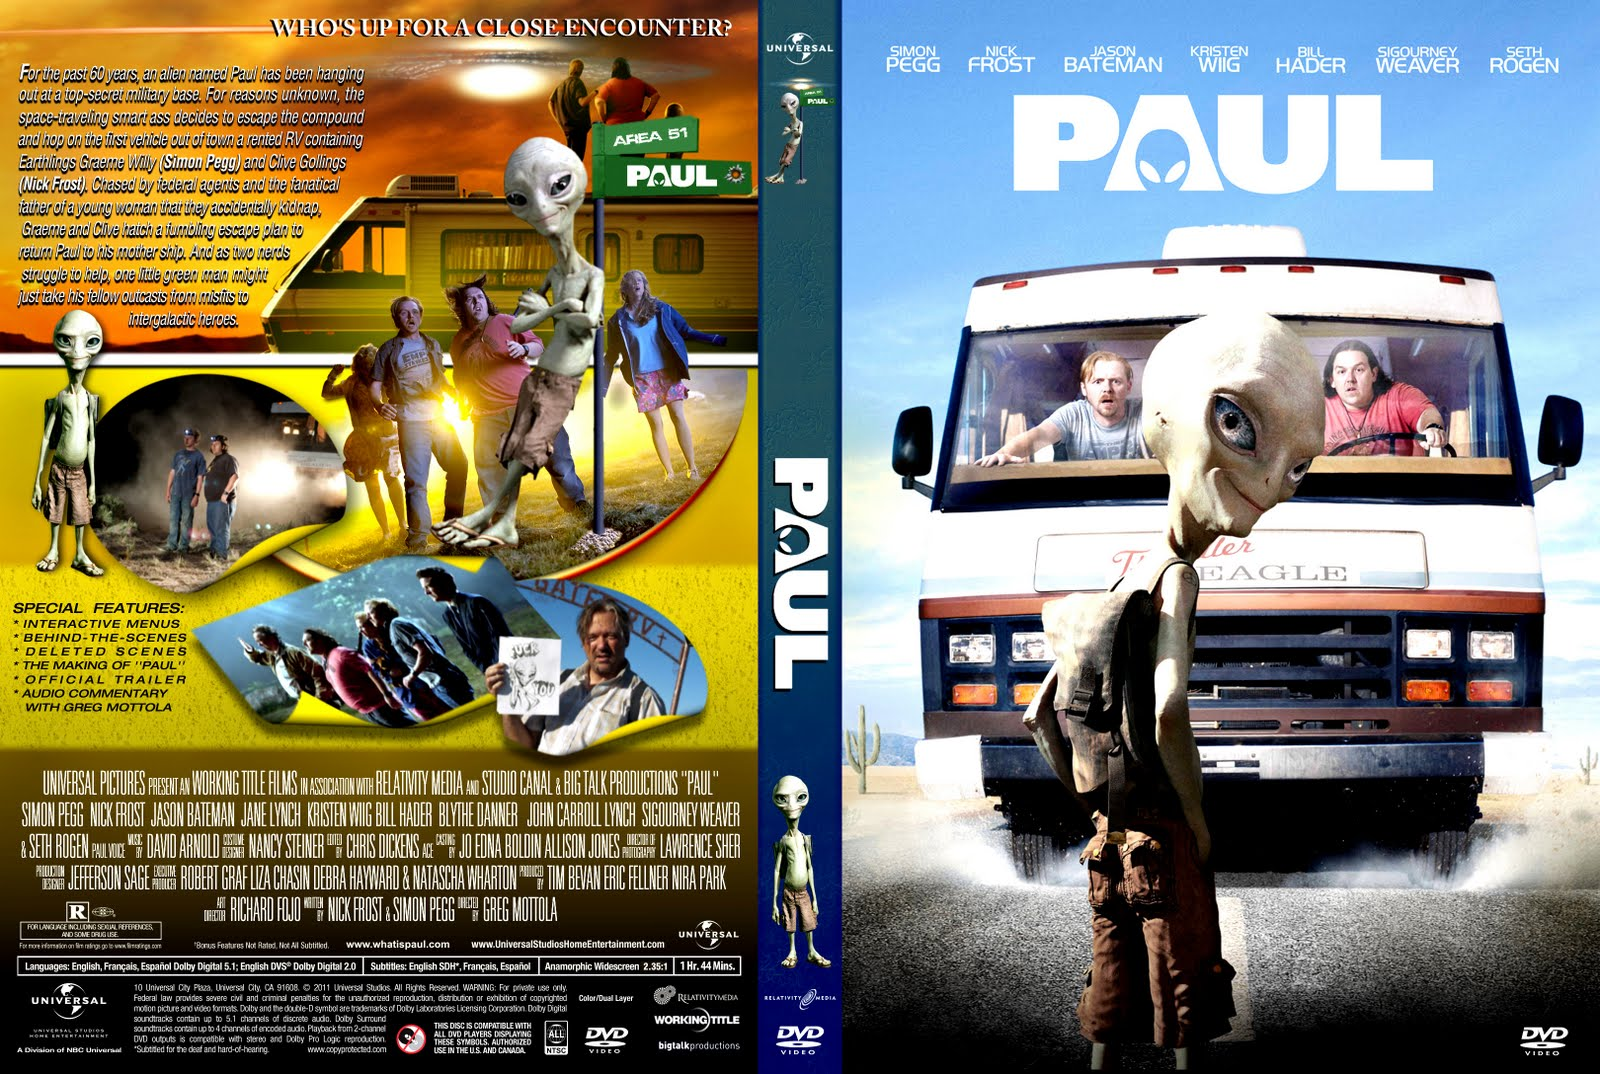 download paul 2011 dvd ntsc ws engspa sk torrent